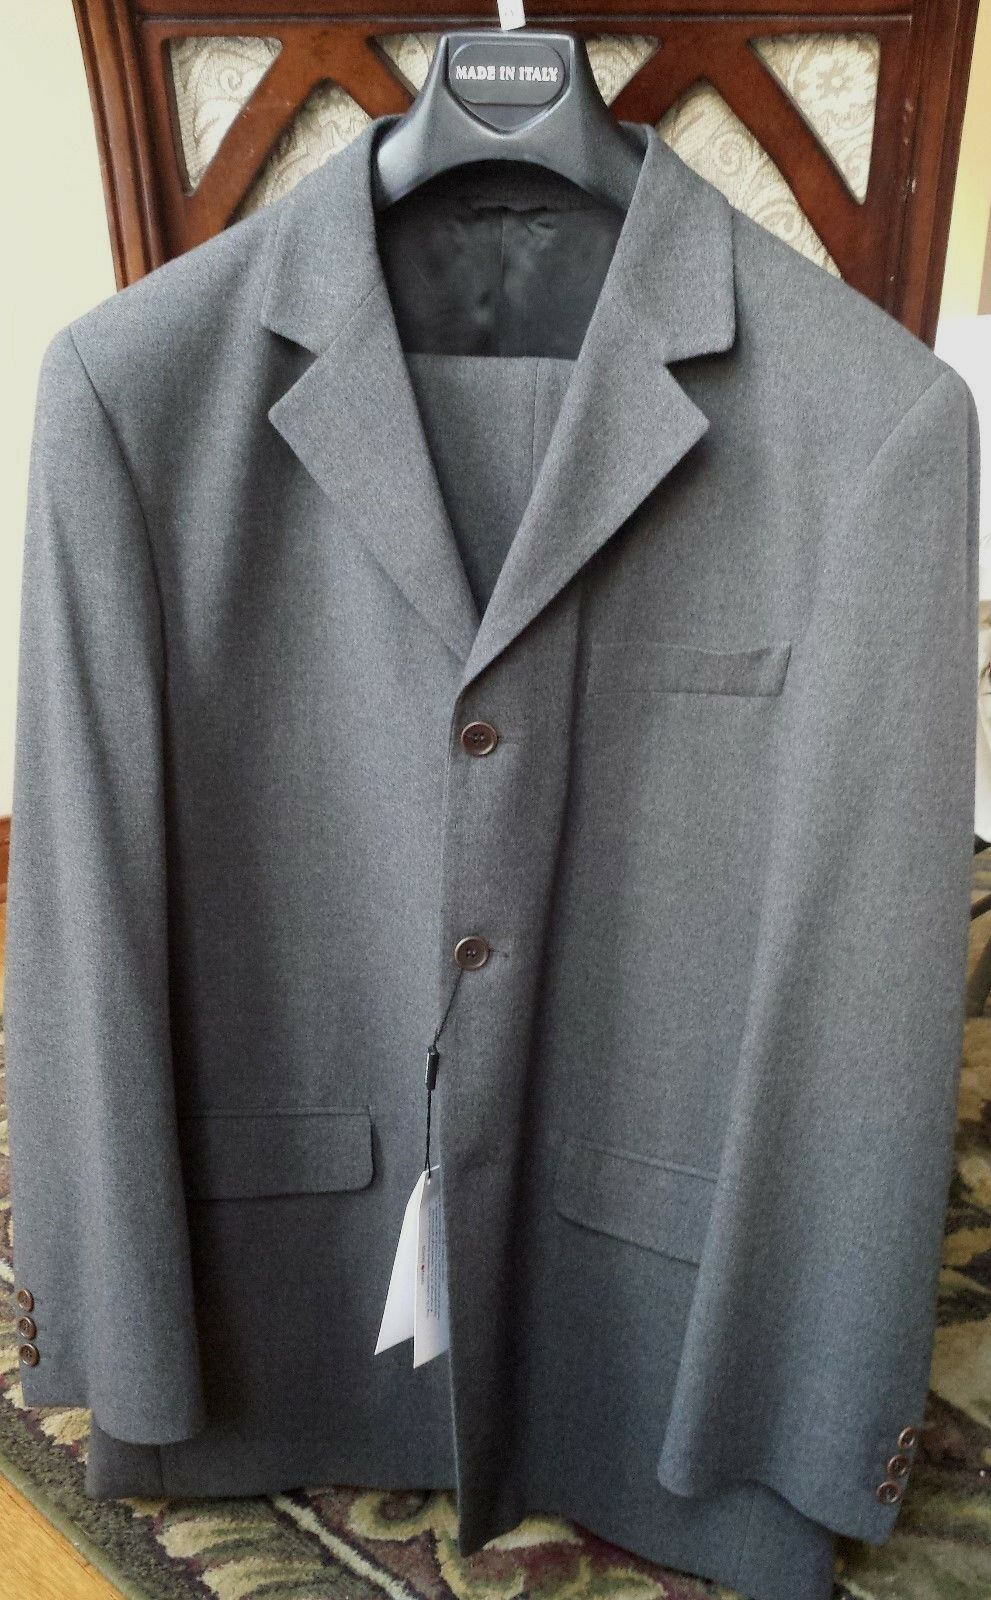 IVANO BIAGI  Herren 3 BUTTON grau CHARCOAL SUIT US SIZE 42R MADE IN ITALY MSRP 499